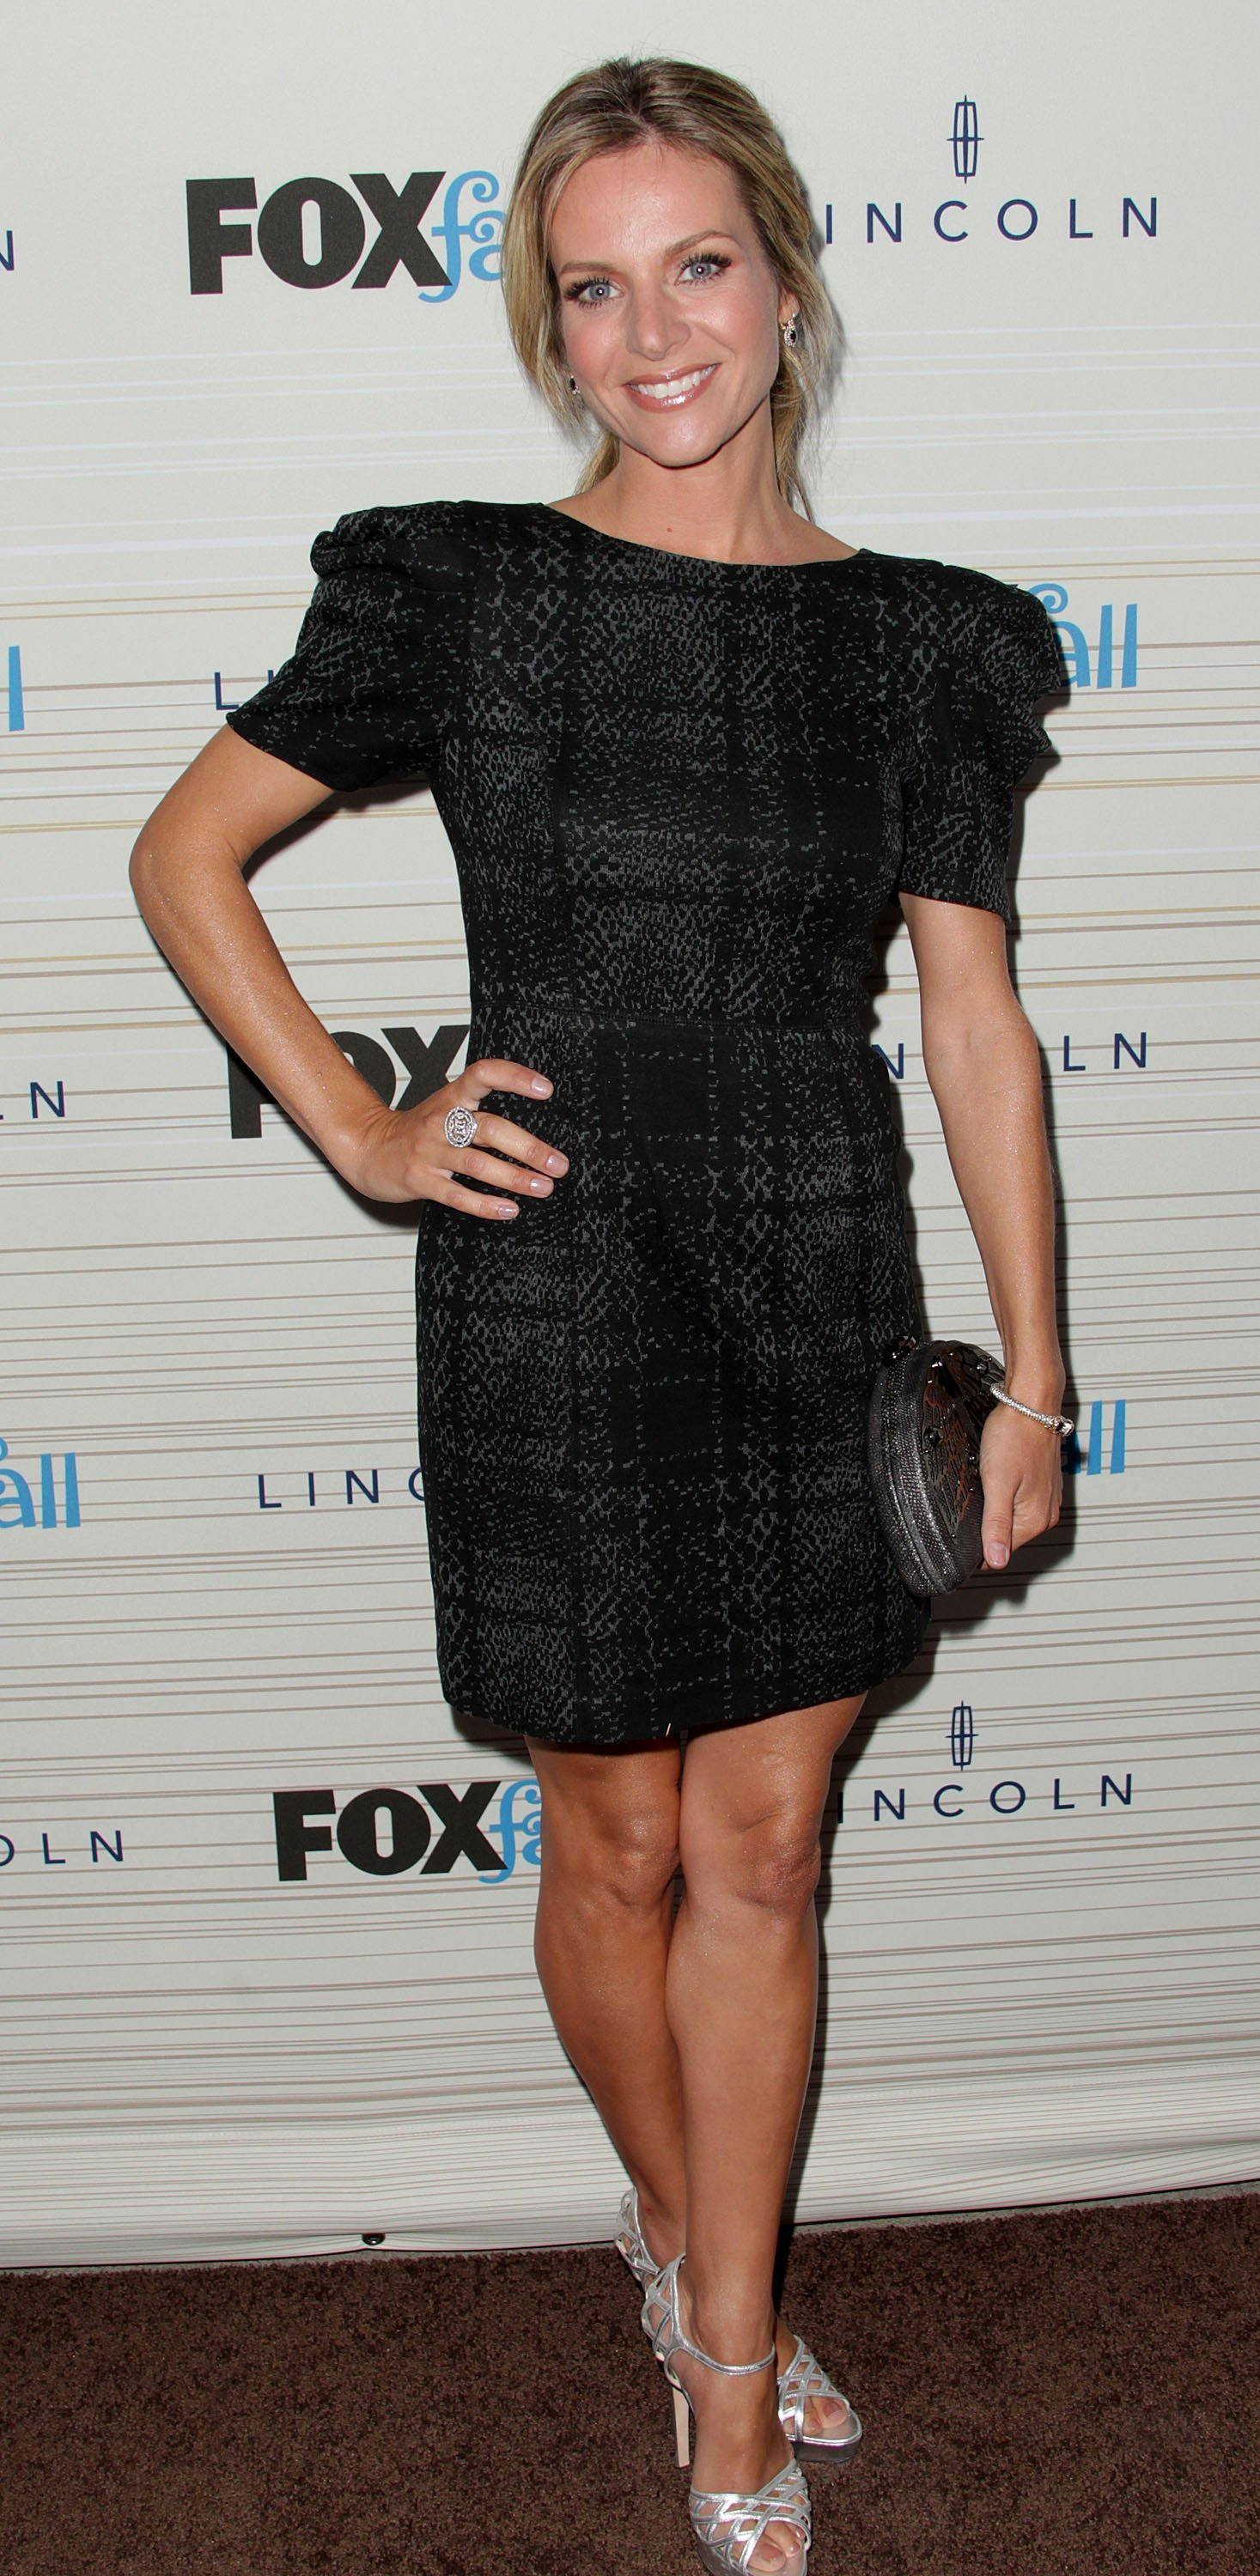 Jessalyn Gilsig attends Fox's Fall Eco-Casino party at Boa on September 13, 2010, in West Hollywood, California. | Source: Getty Images.